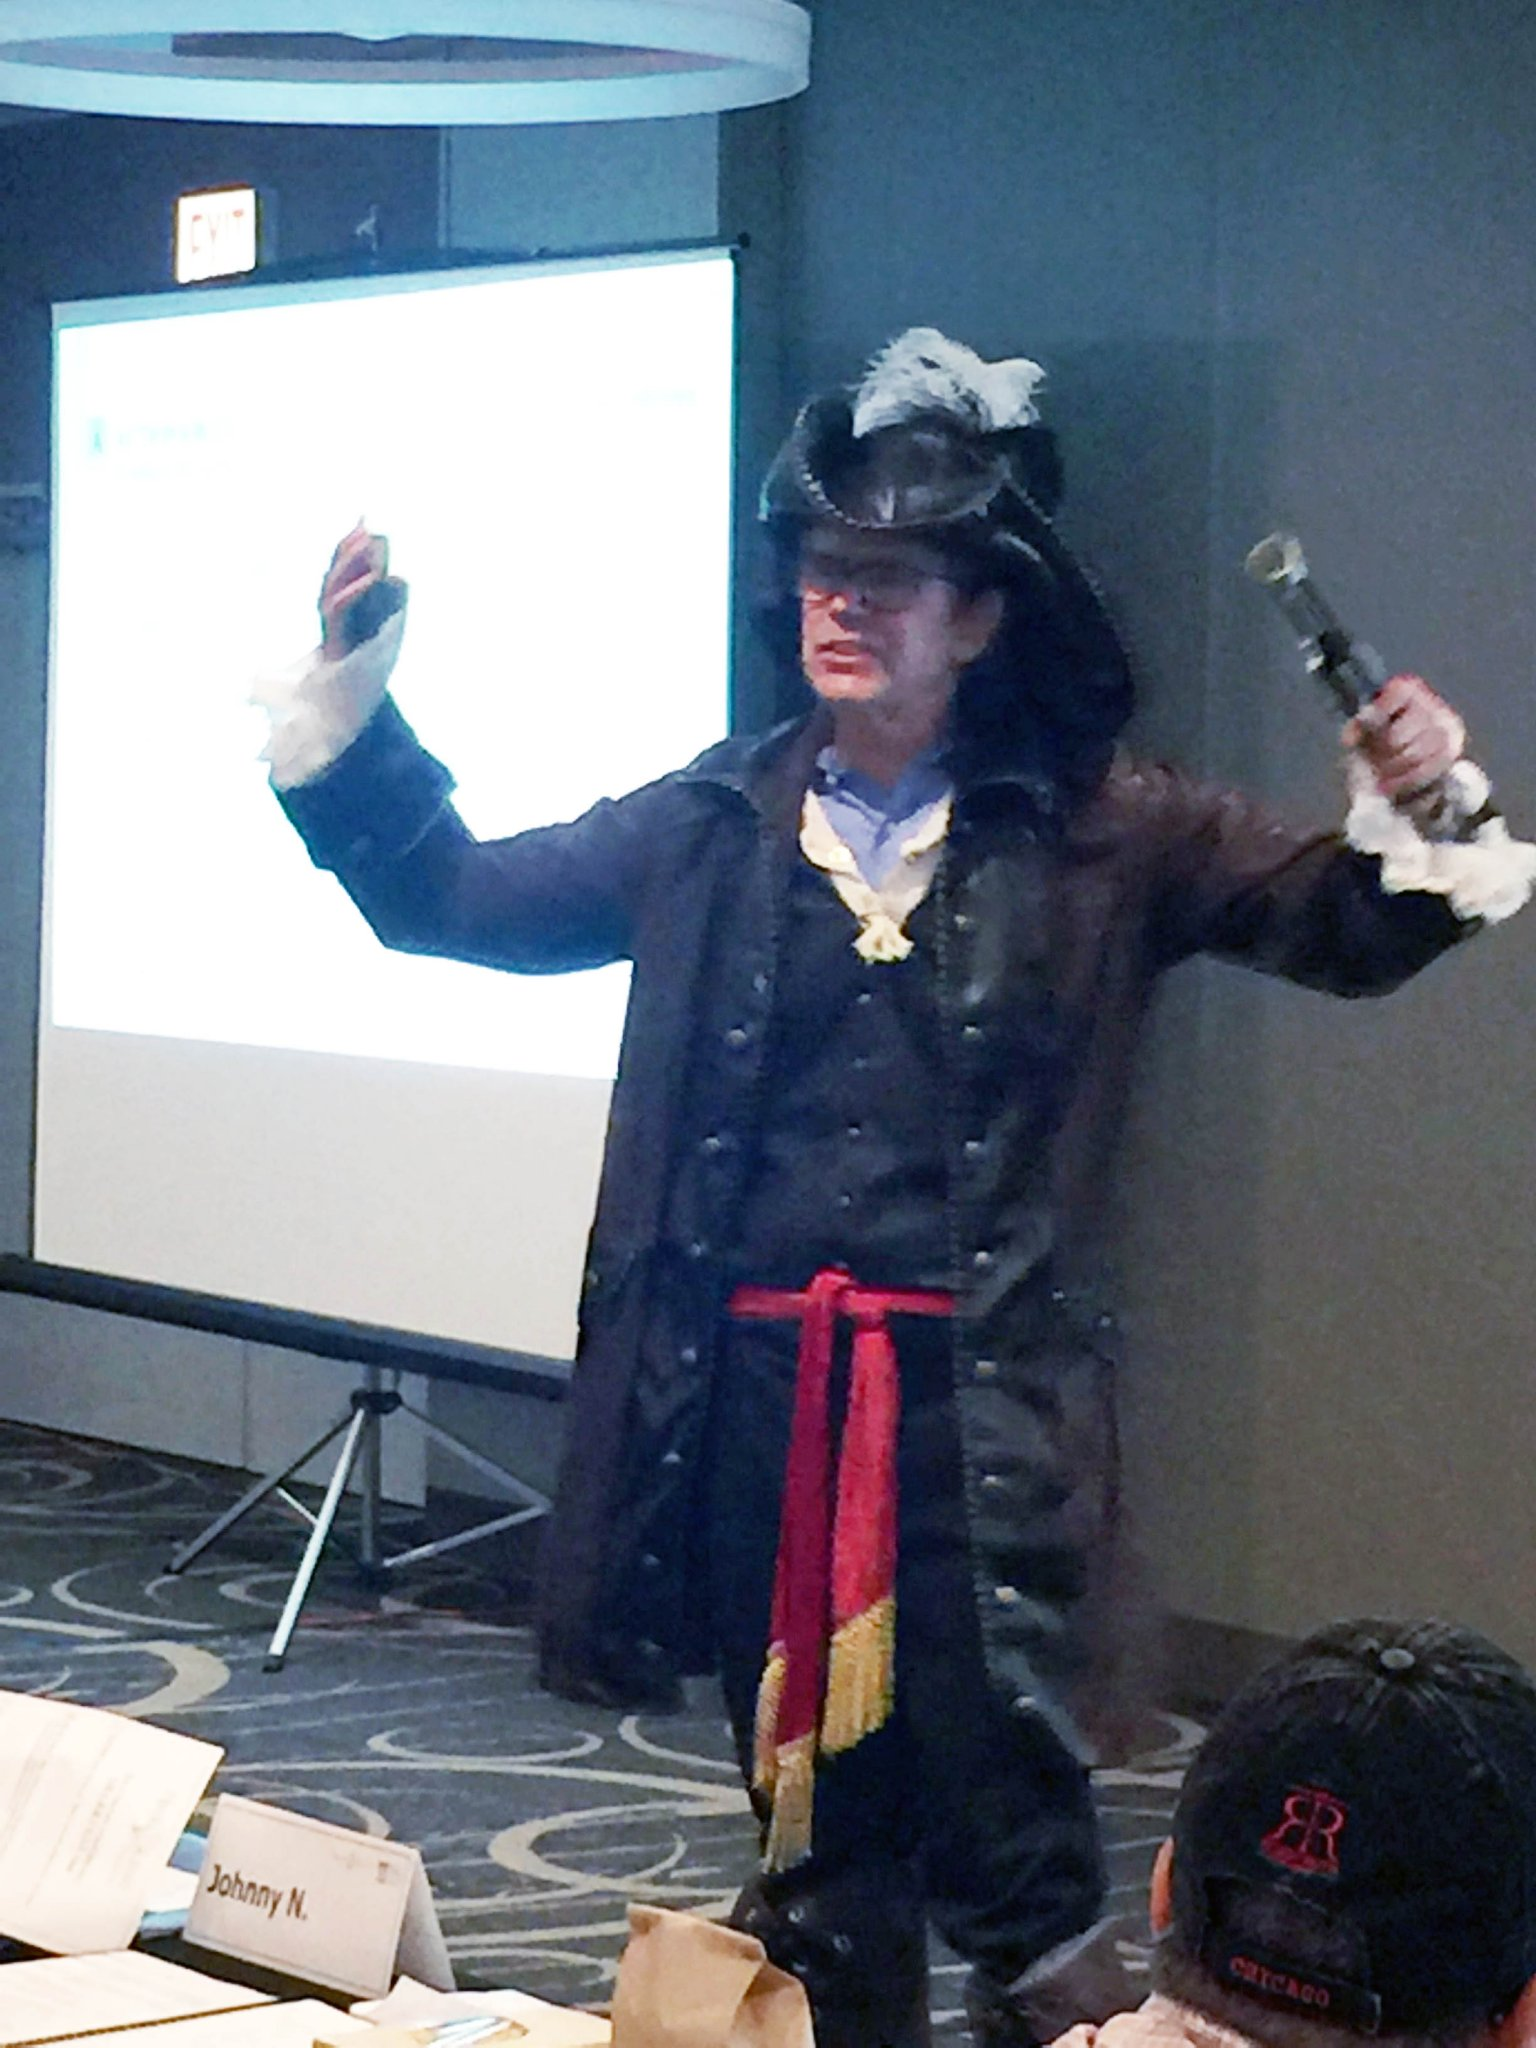 Harold Lloyd dressed as a pirate while giving his presentation